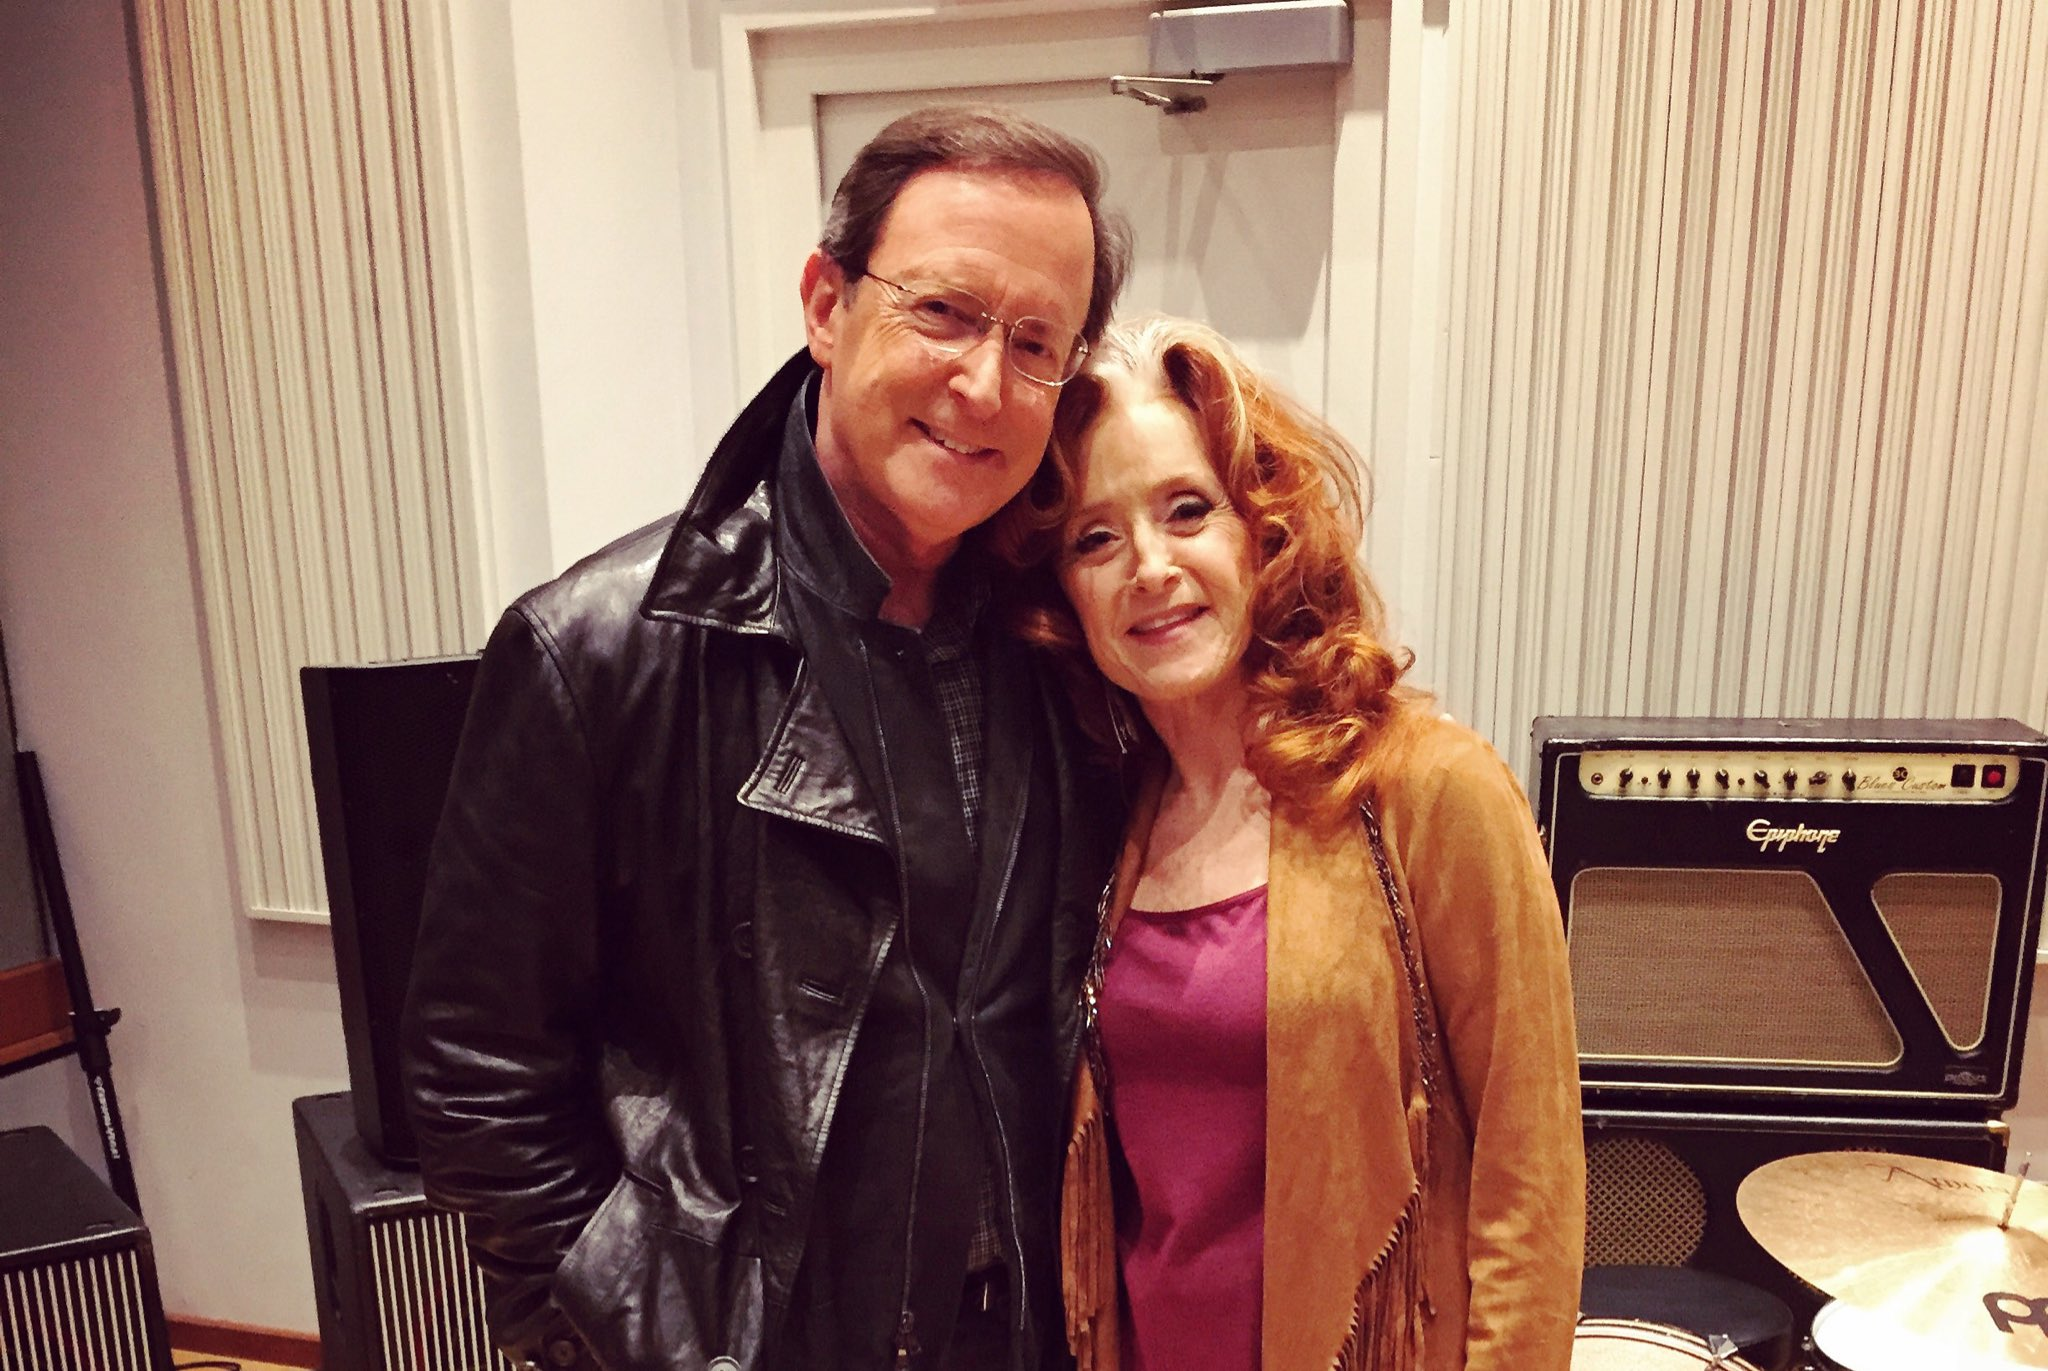 Happy Birthday to the ever glorious Bonnie Raitt!!